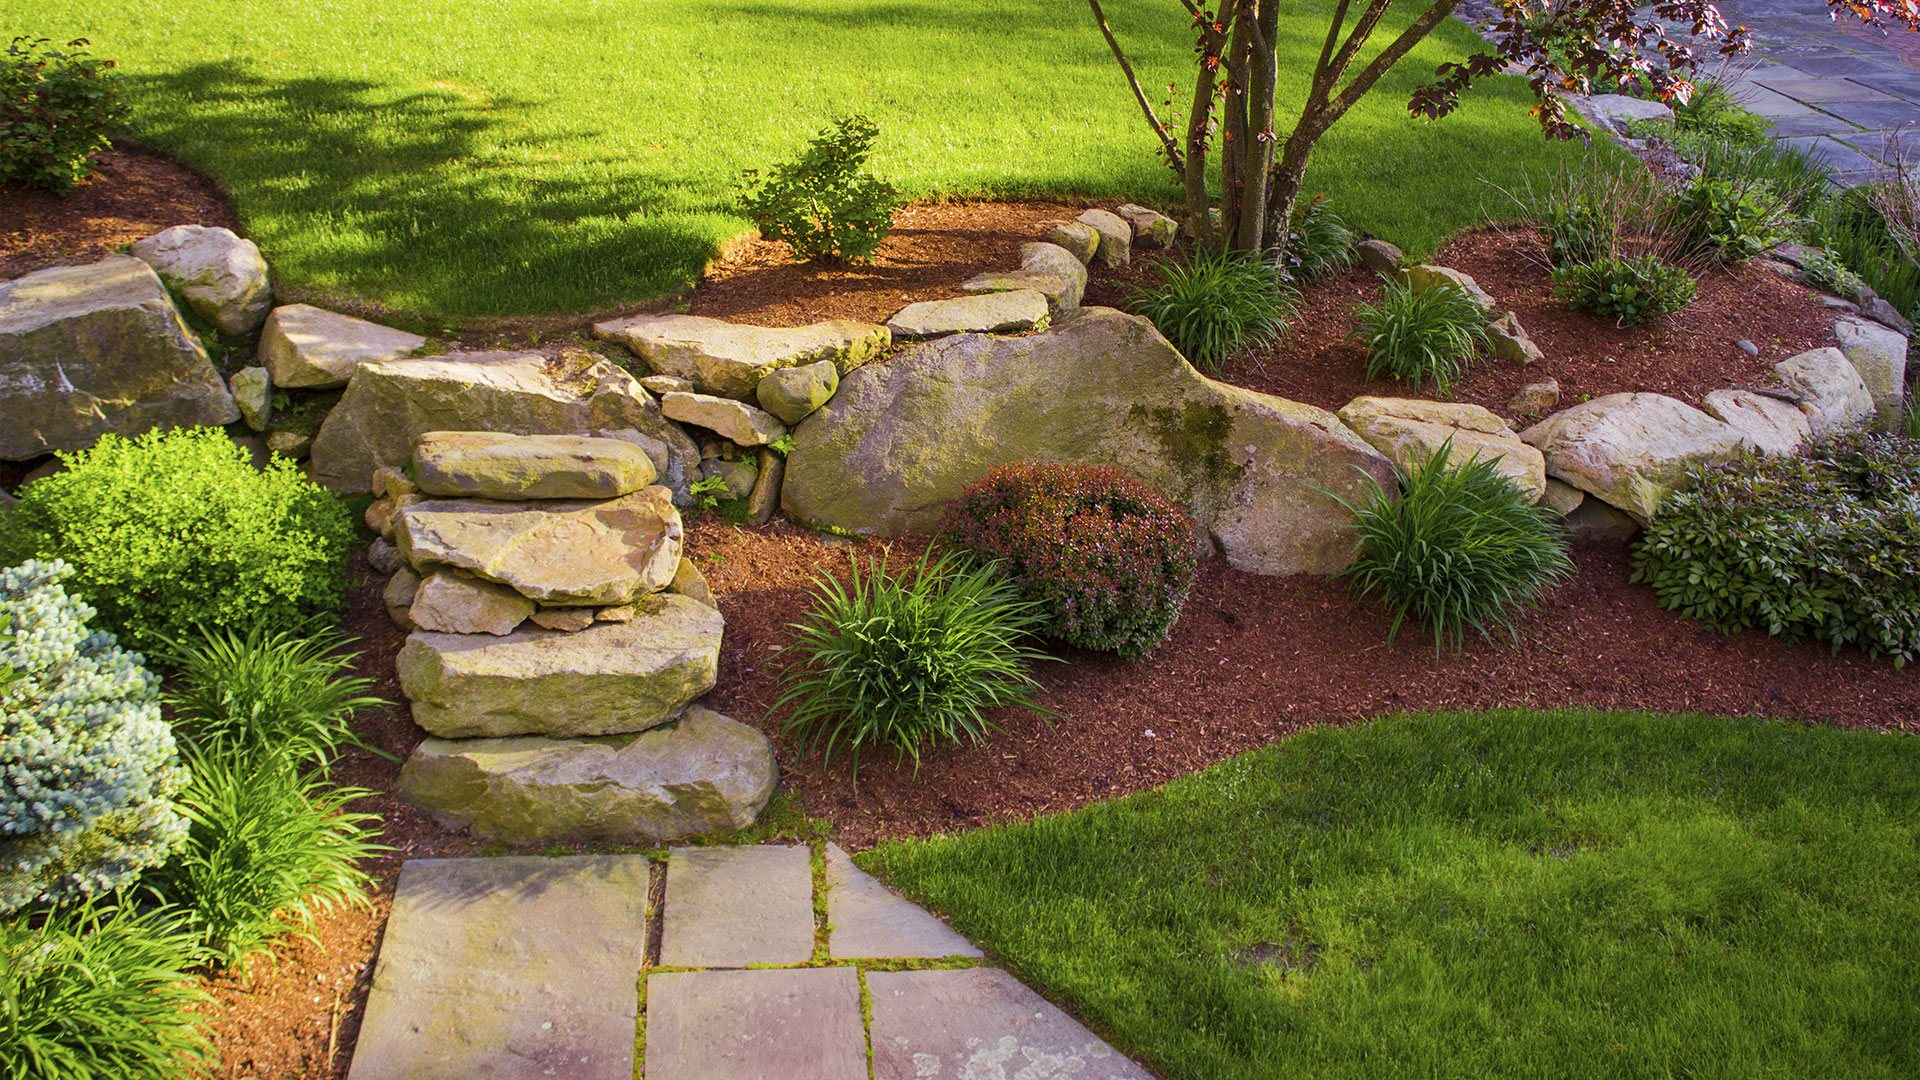 Elowsky Lawn Services of Michigan Inc Landscaper, Landscaping Services and Lawn Care Services slide 3